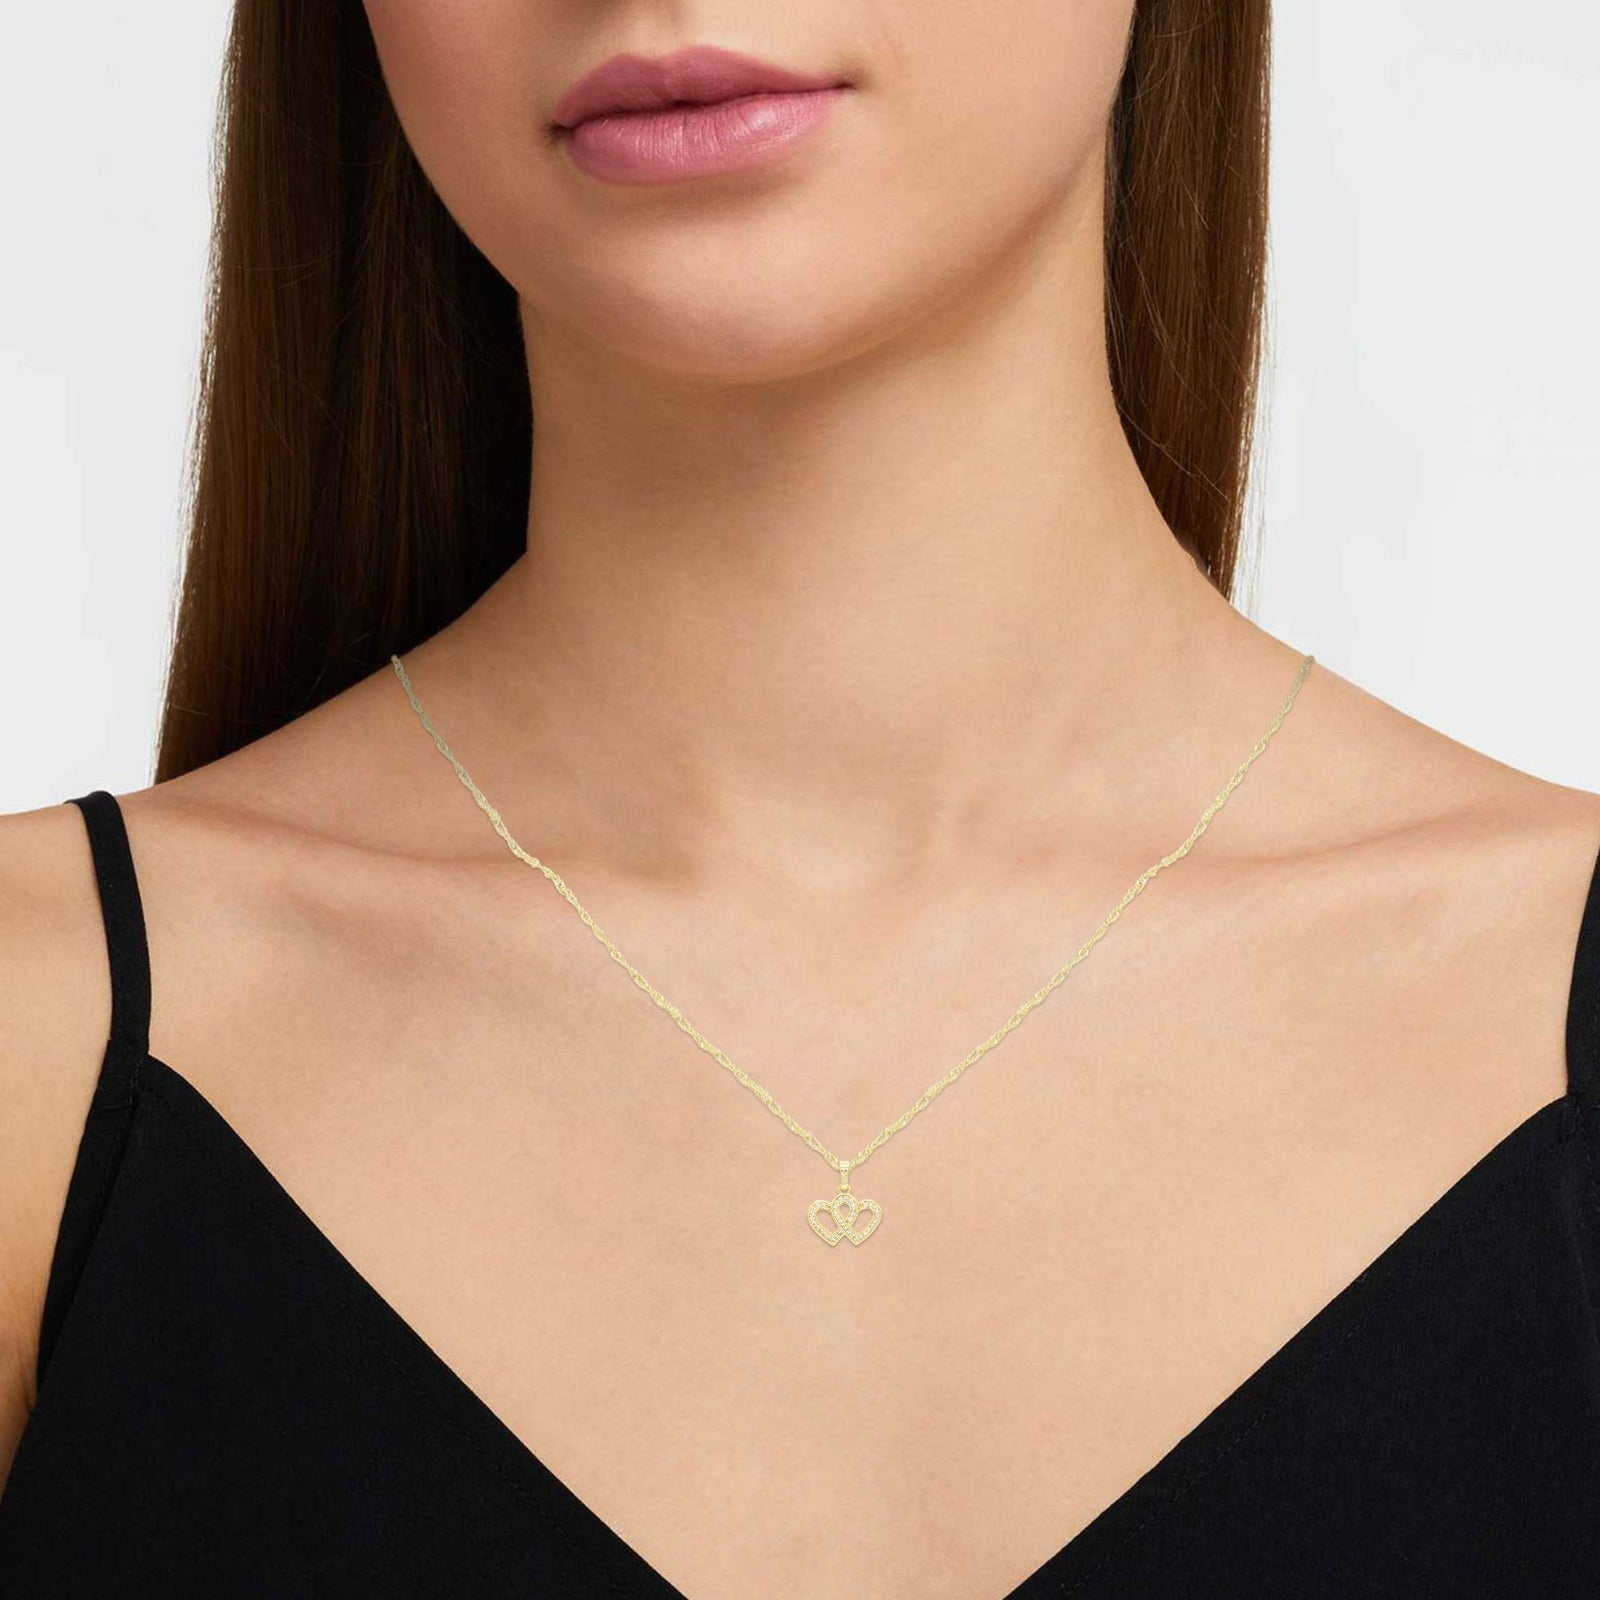 Heart Connected Cubic Zirconia Pendant With Necklace Set 14K Gold Filled